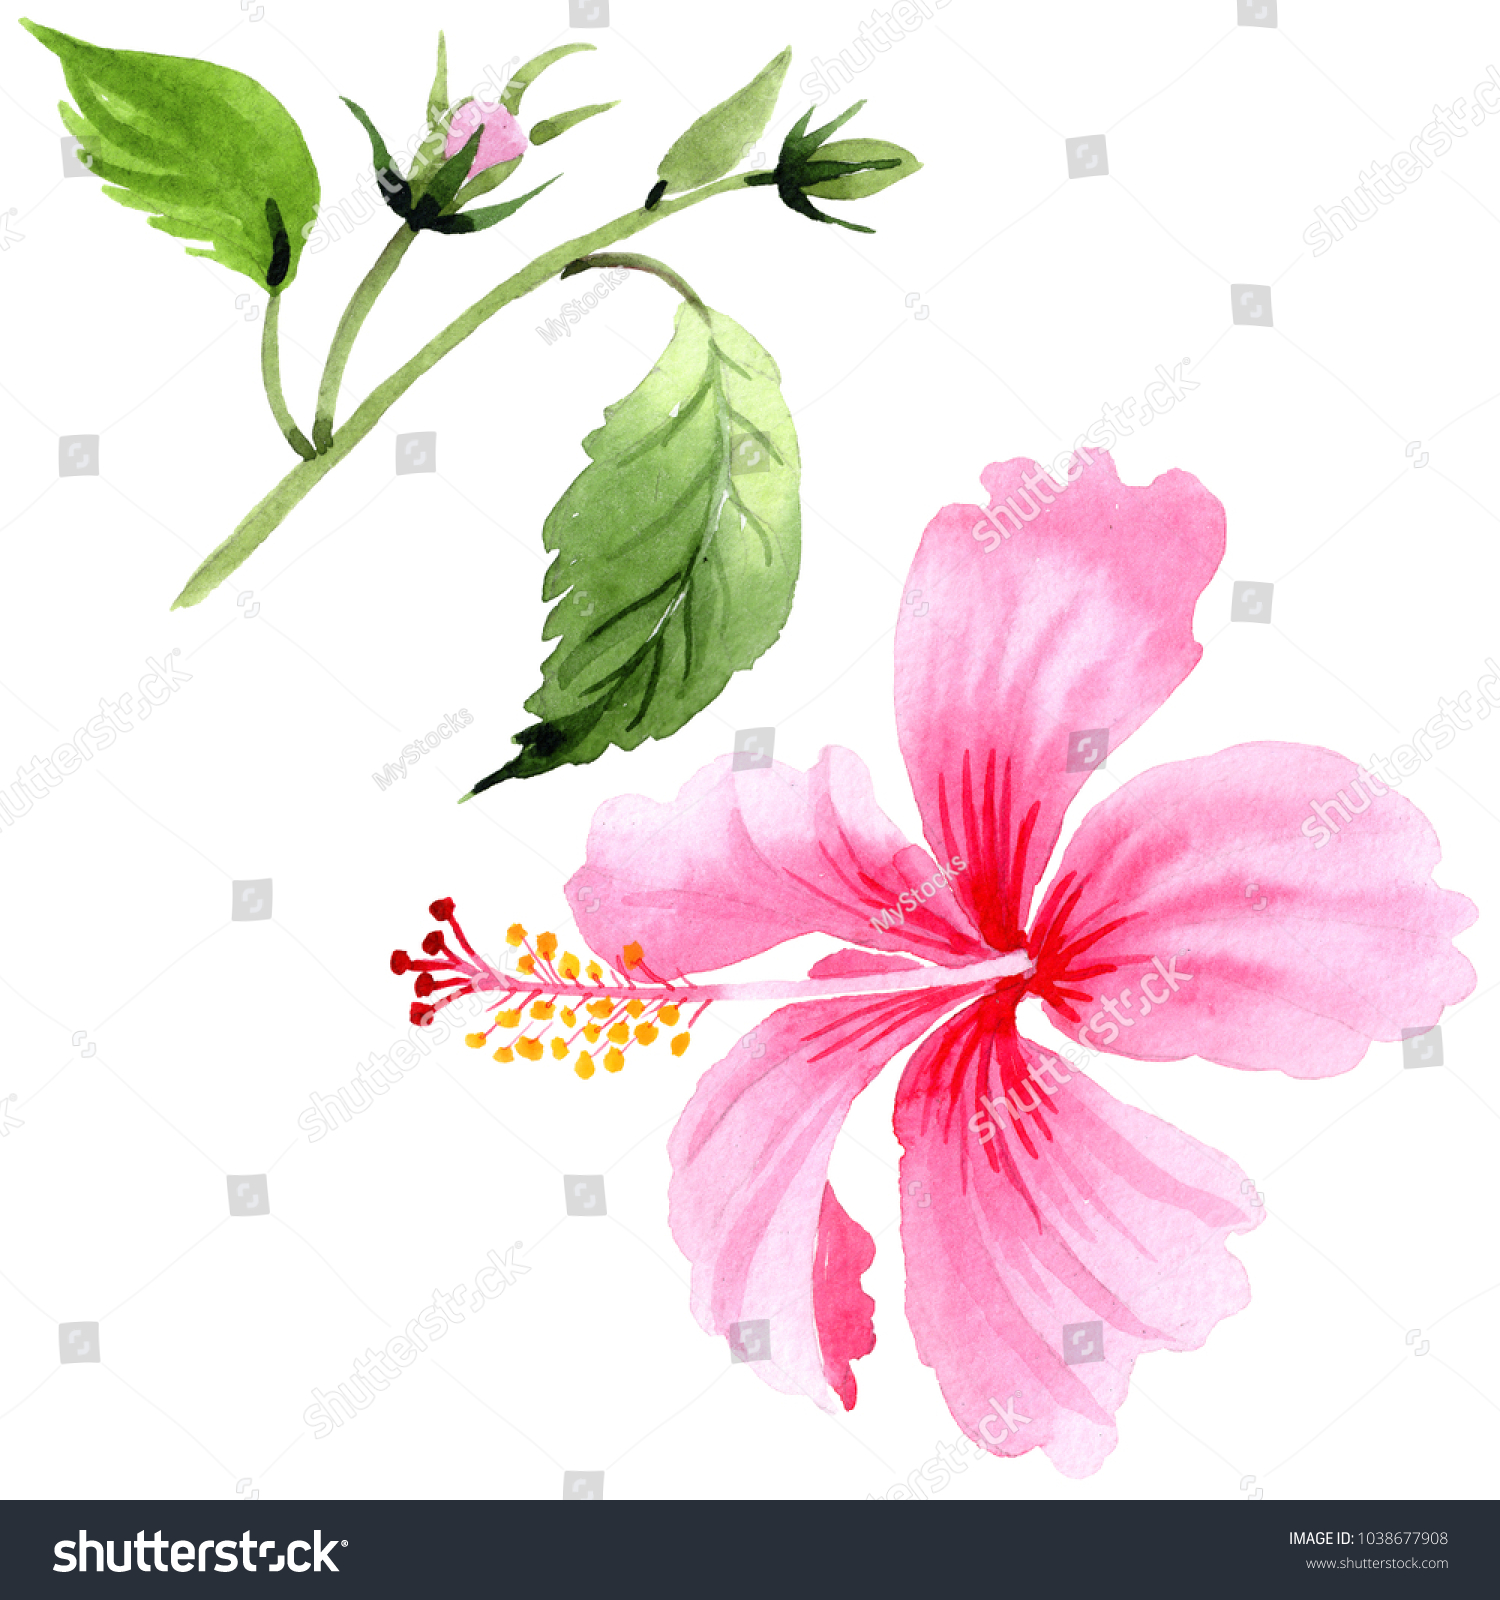 Wildflower hibiscus pink flower in a watercolor style isolated full wildflower hibiscus pink flower in a watercolor style isolated full name of the plant hibiscus aquarelle wild flower for background texture izmirmasajfo